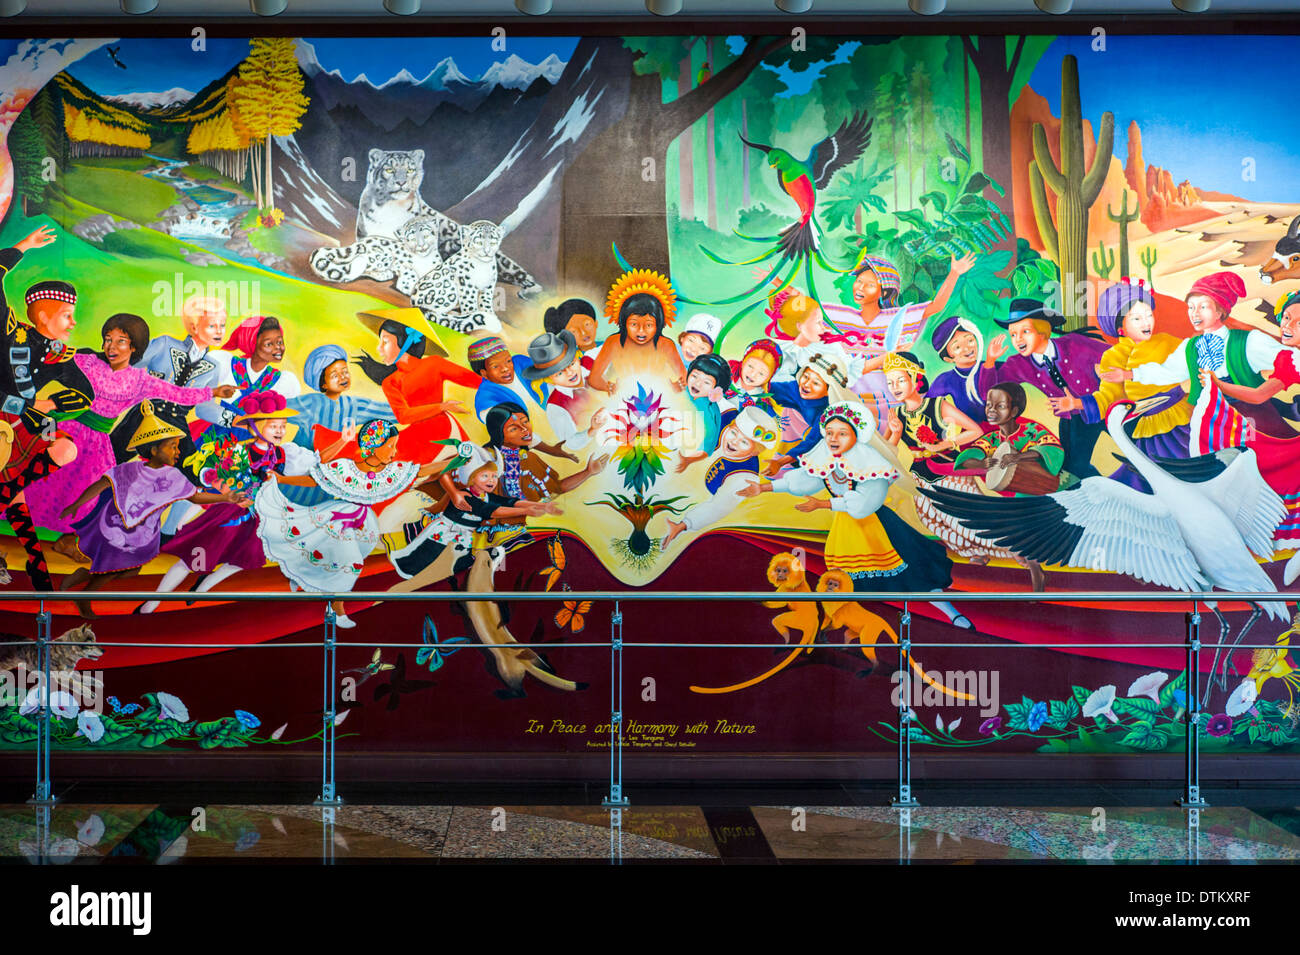 Colorful Mural Titled In Peace Harmony With Nature By Leo Tanguma Denver International Airport Colorado USA